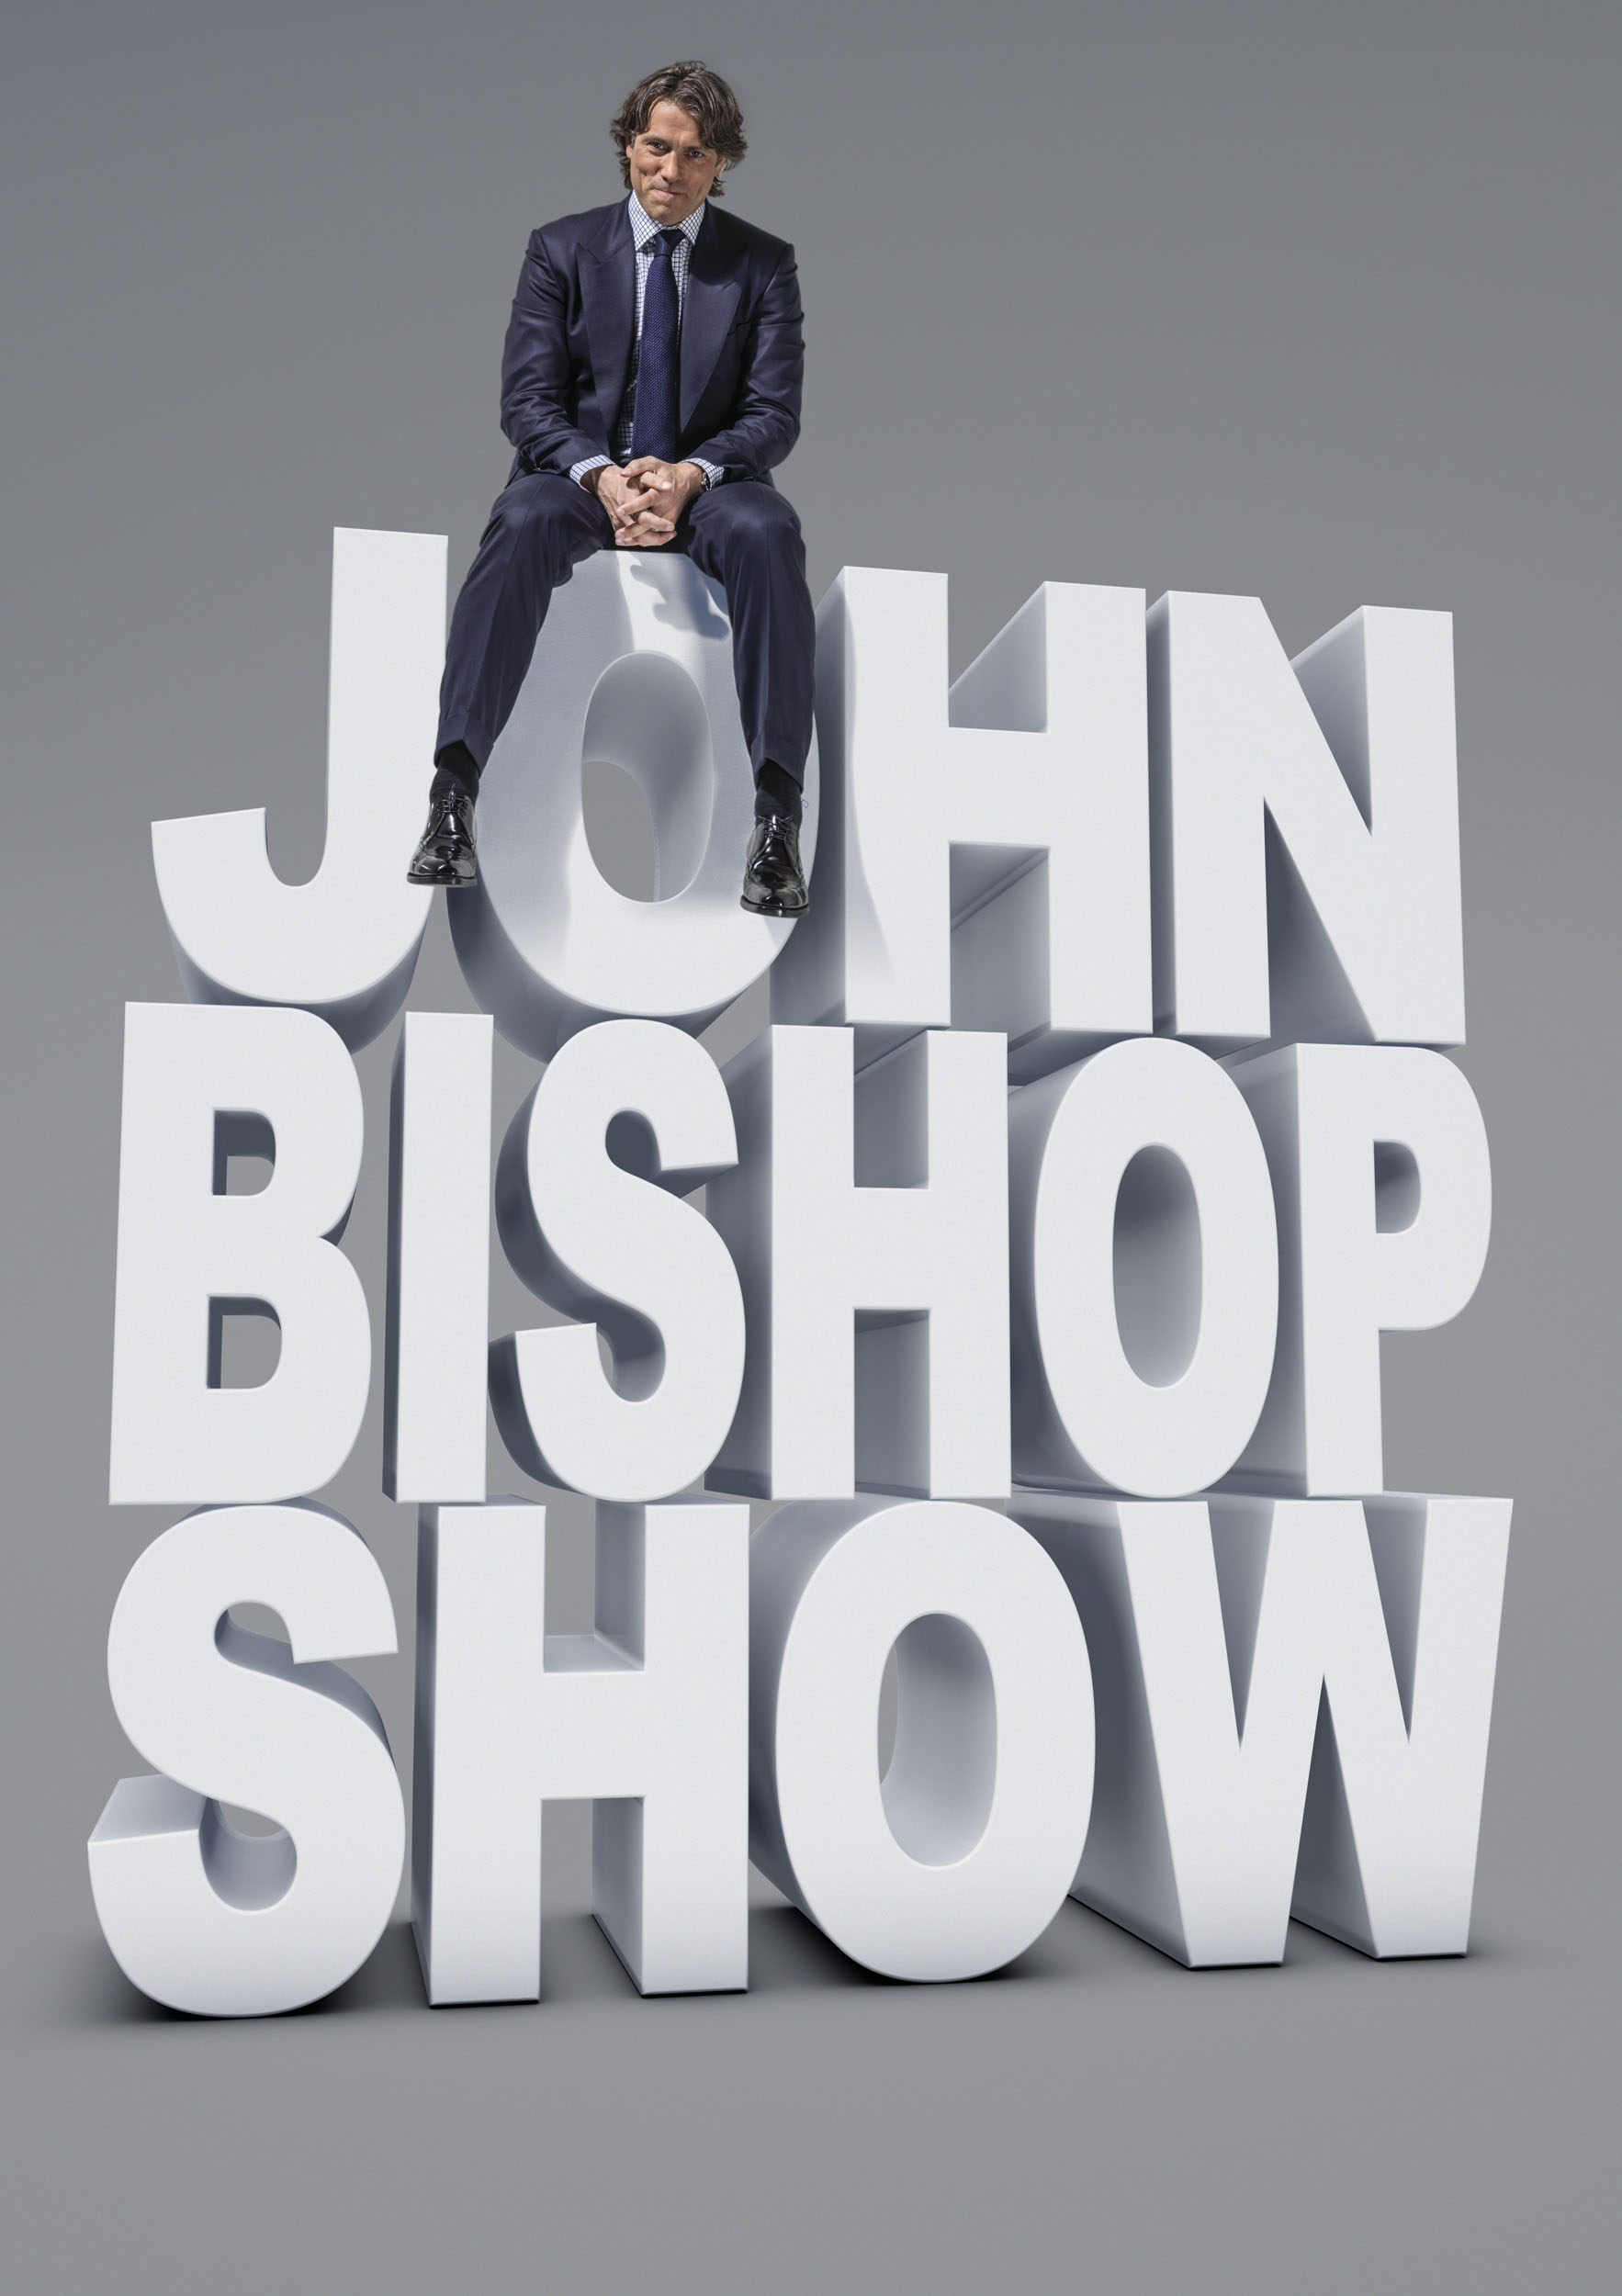 BOOM_CGI_PRODUCT_john-bishop-show.jpg